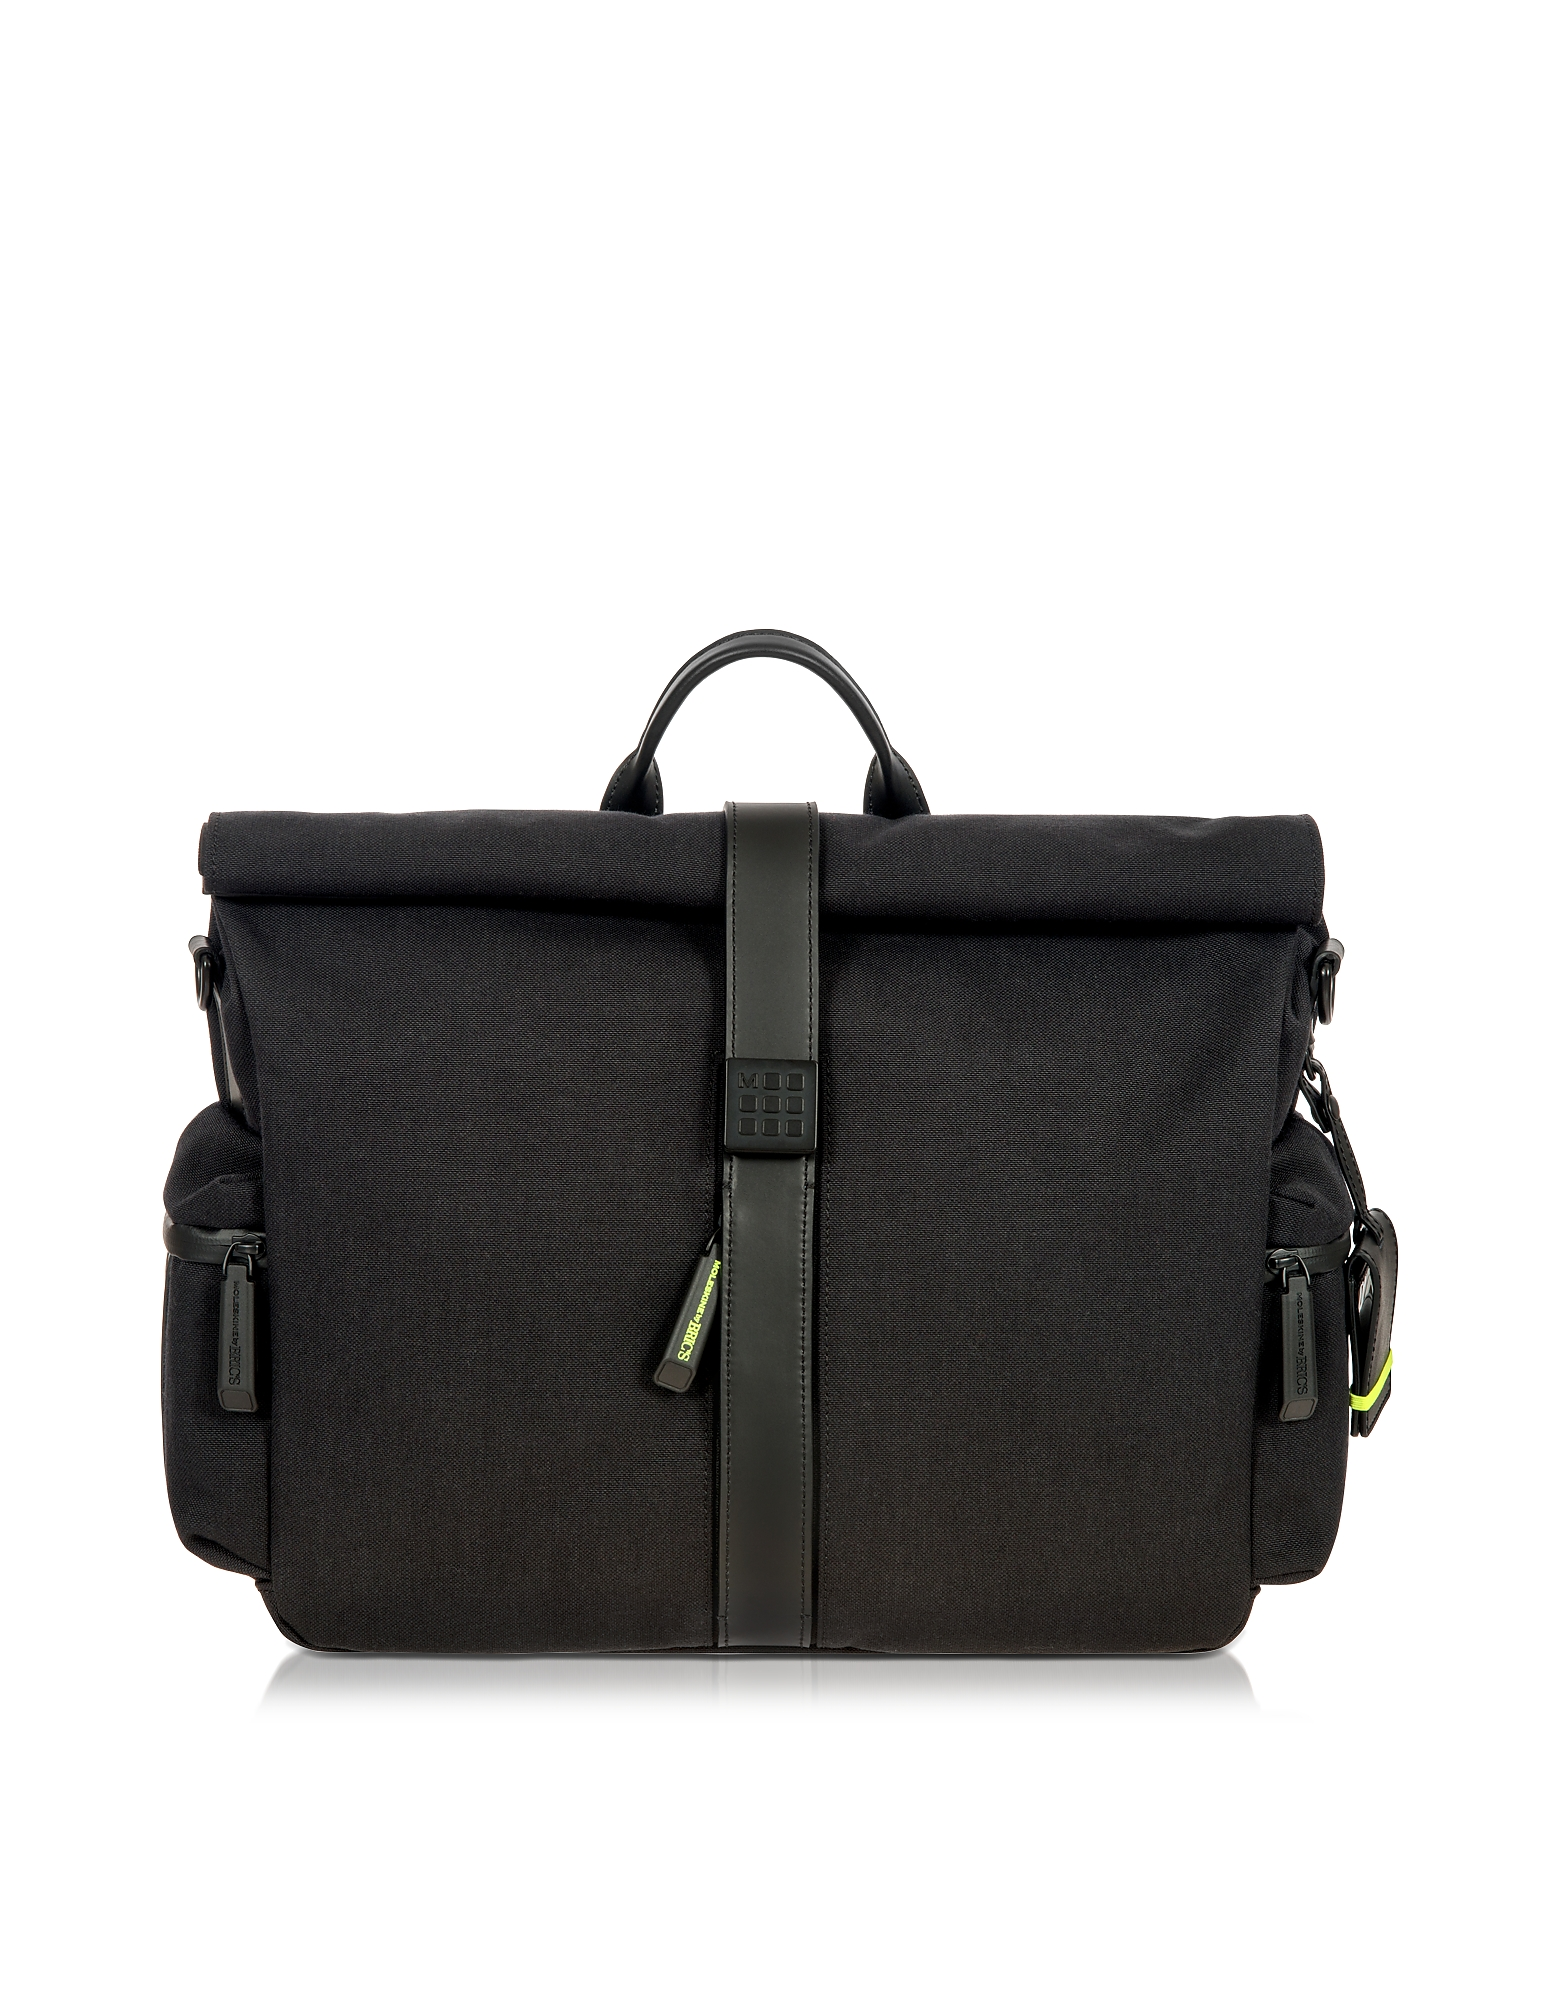 Bric's Briefcases, Black Nylon and Leather Roll-Top Messenger